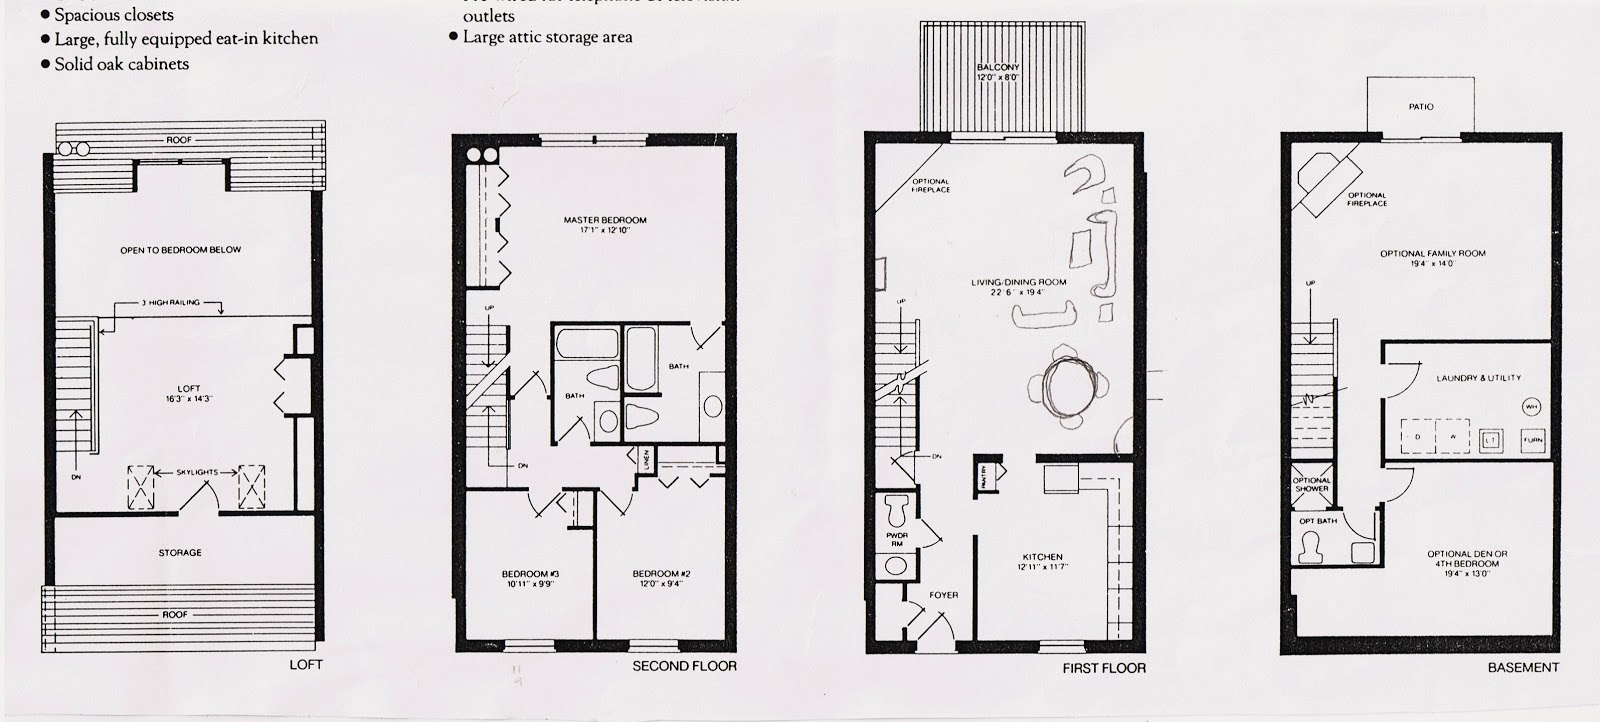 Bathroom floor plans for 7 x 10 home decorating for Bathroom floor plans